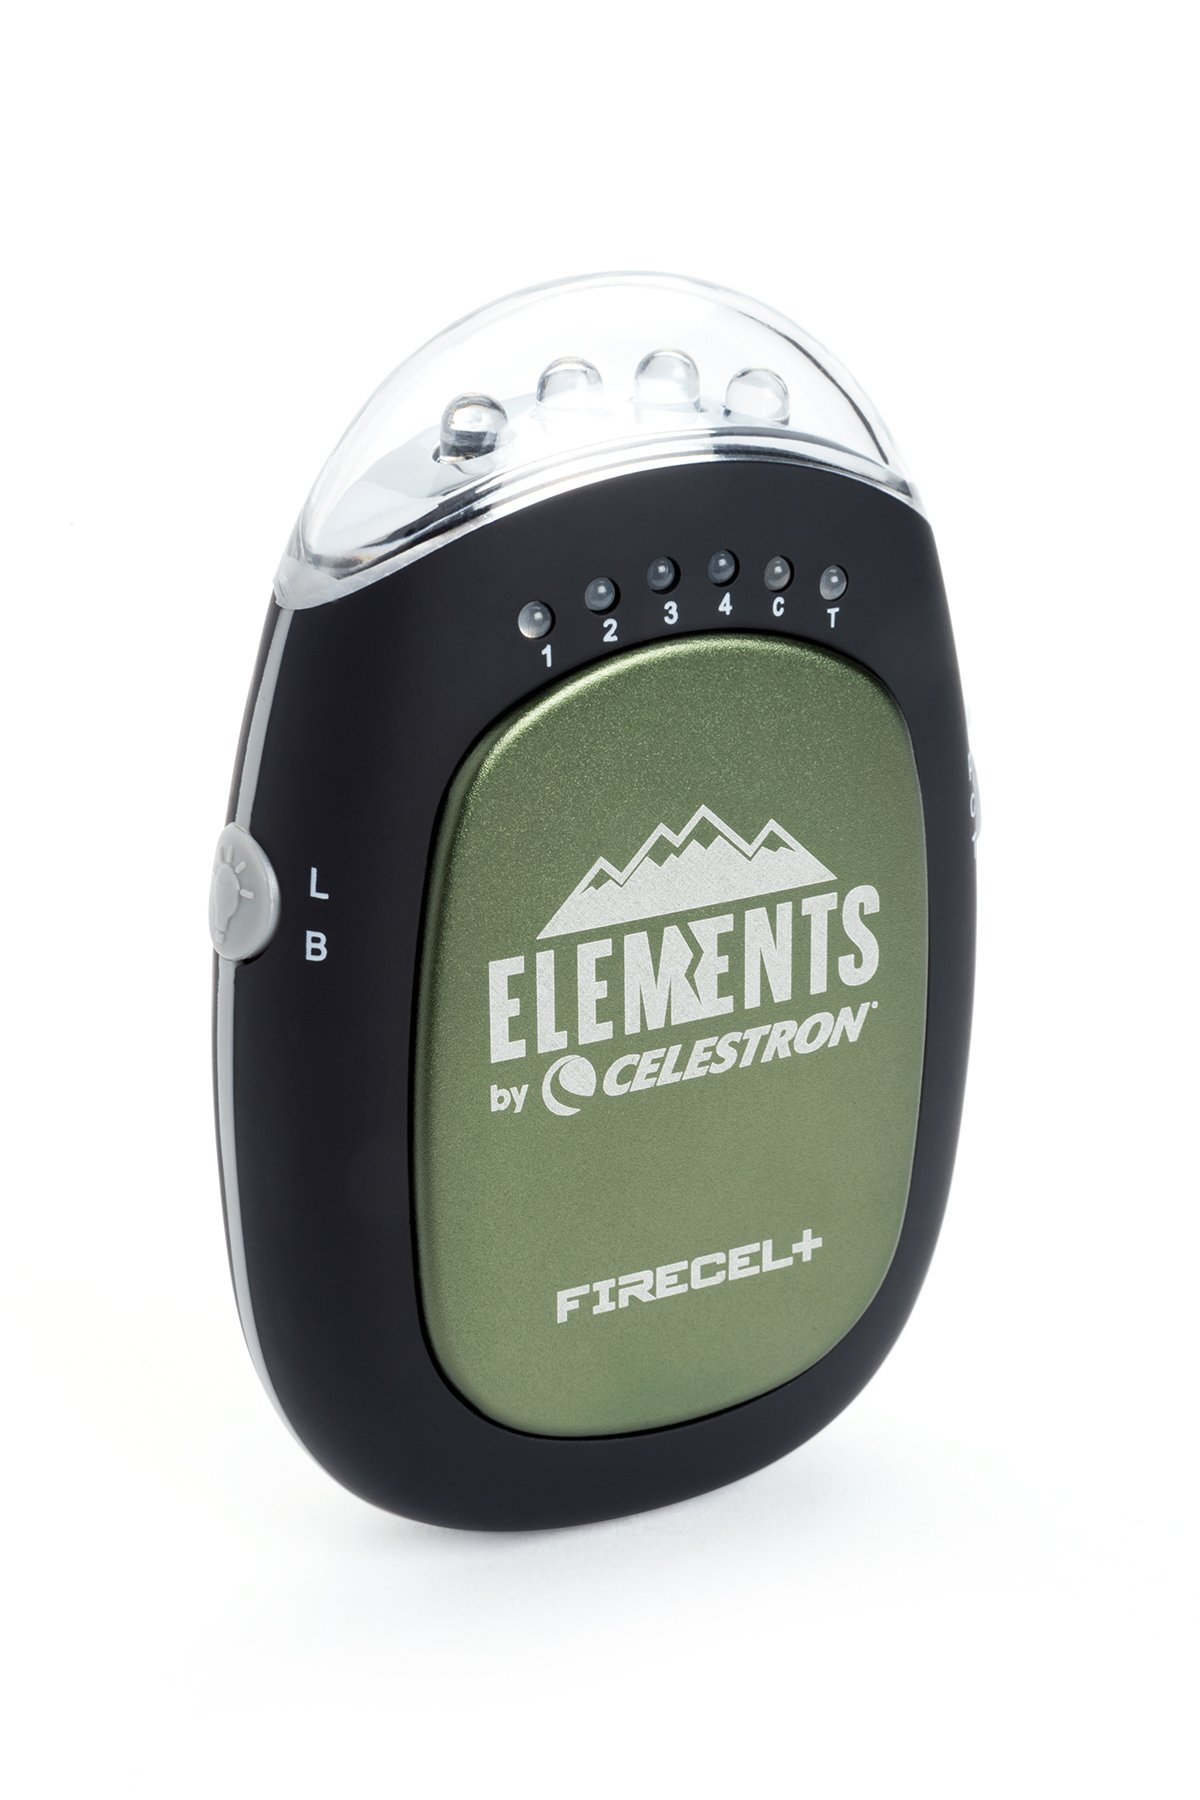 Celestron FireCel Plus - Hand Warmer/Charger/Flashlight, Green (93544) by Celestron